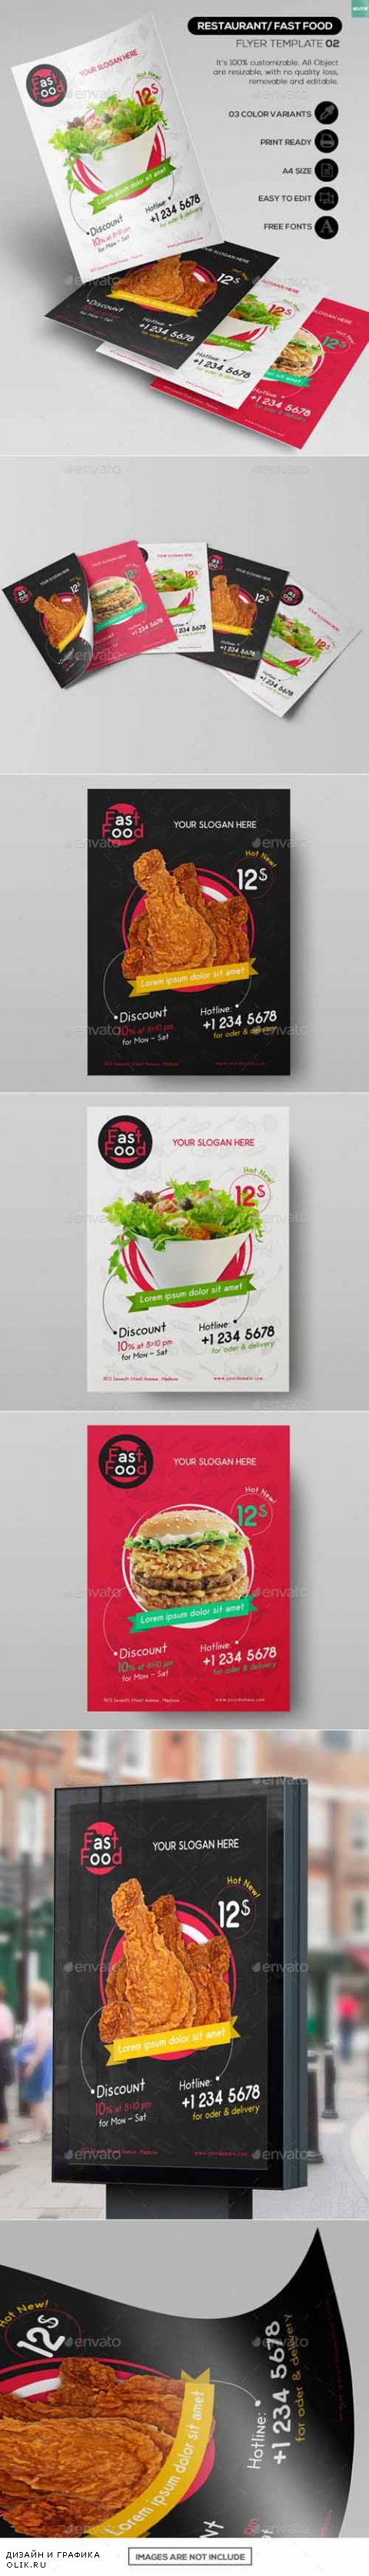 Restaurant/ Fast Food - Flyer Template 02 13214564